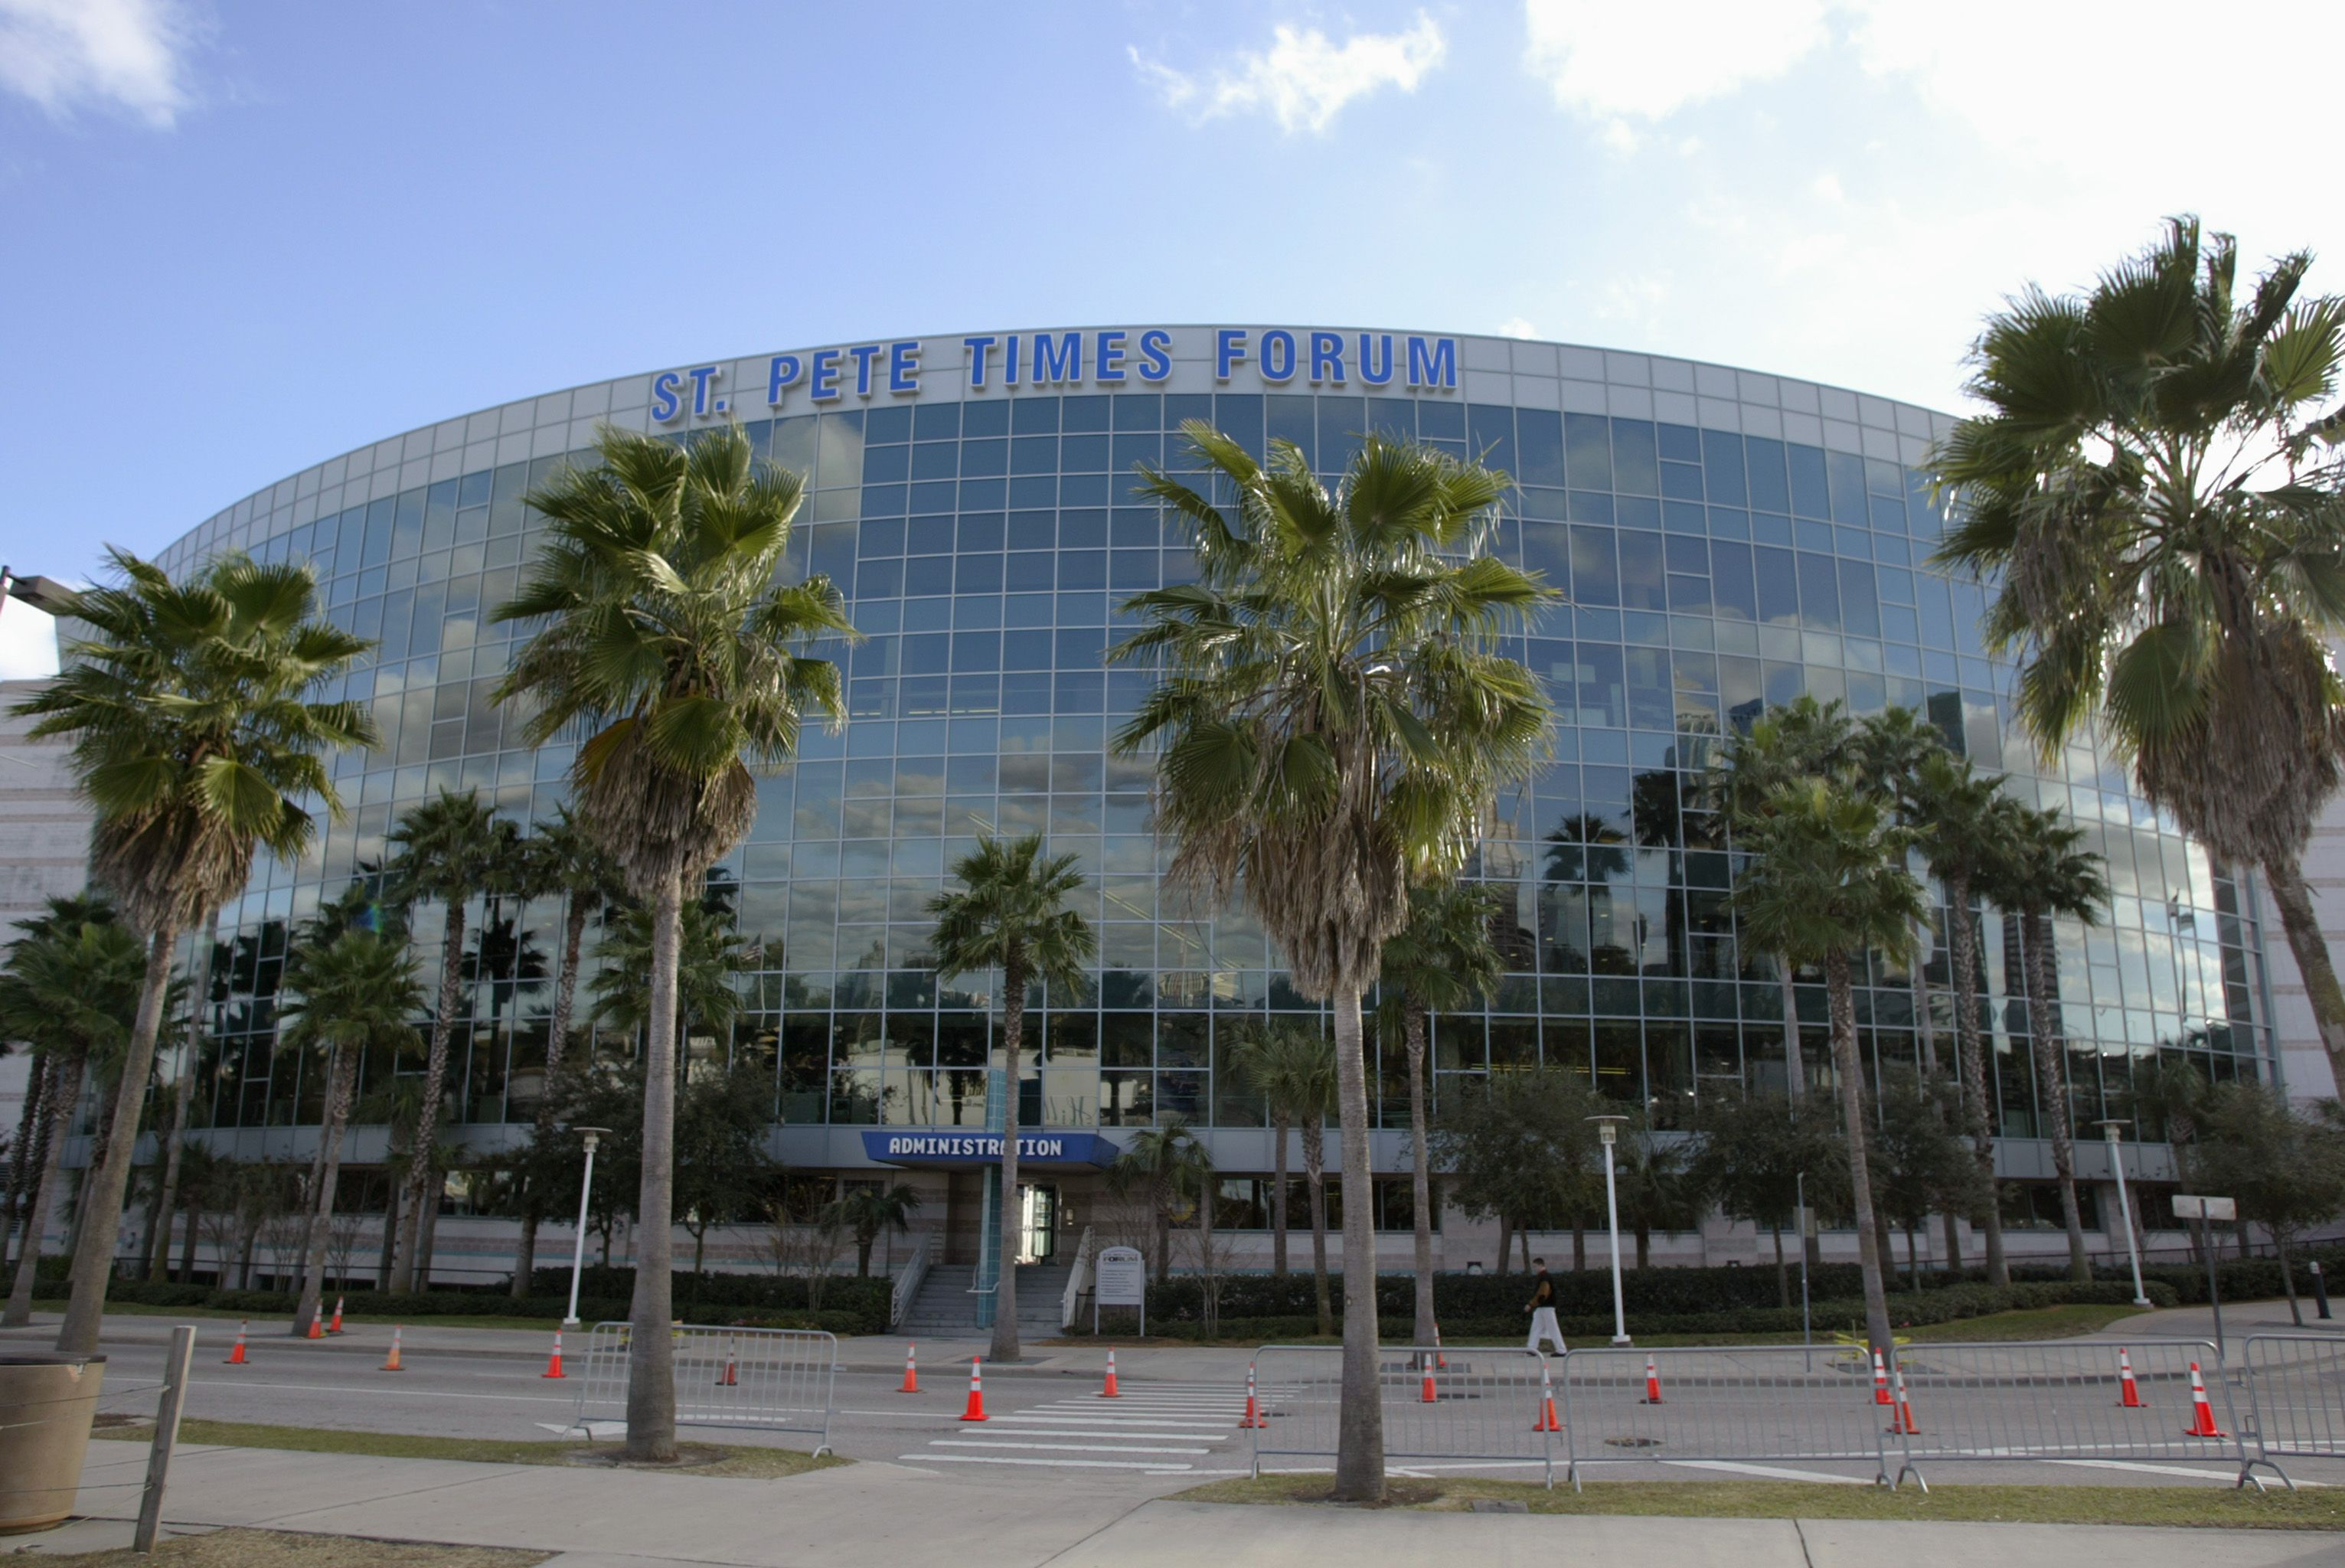 Amalie Arena When It Was Called St. Pete Times Forum, in Tampa, Florida